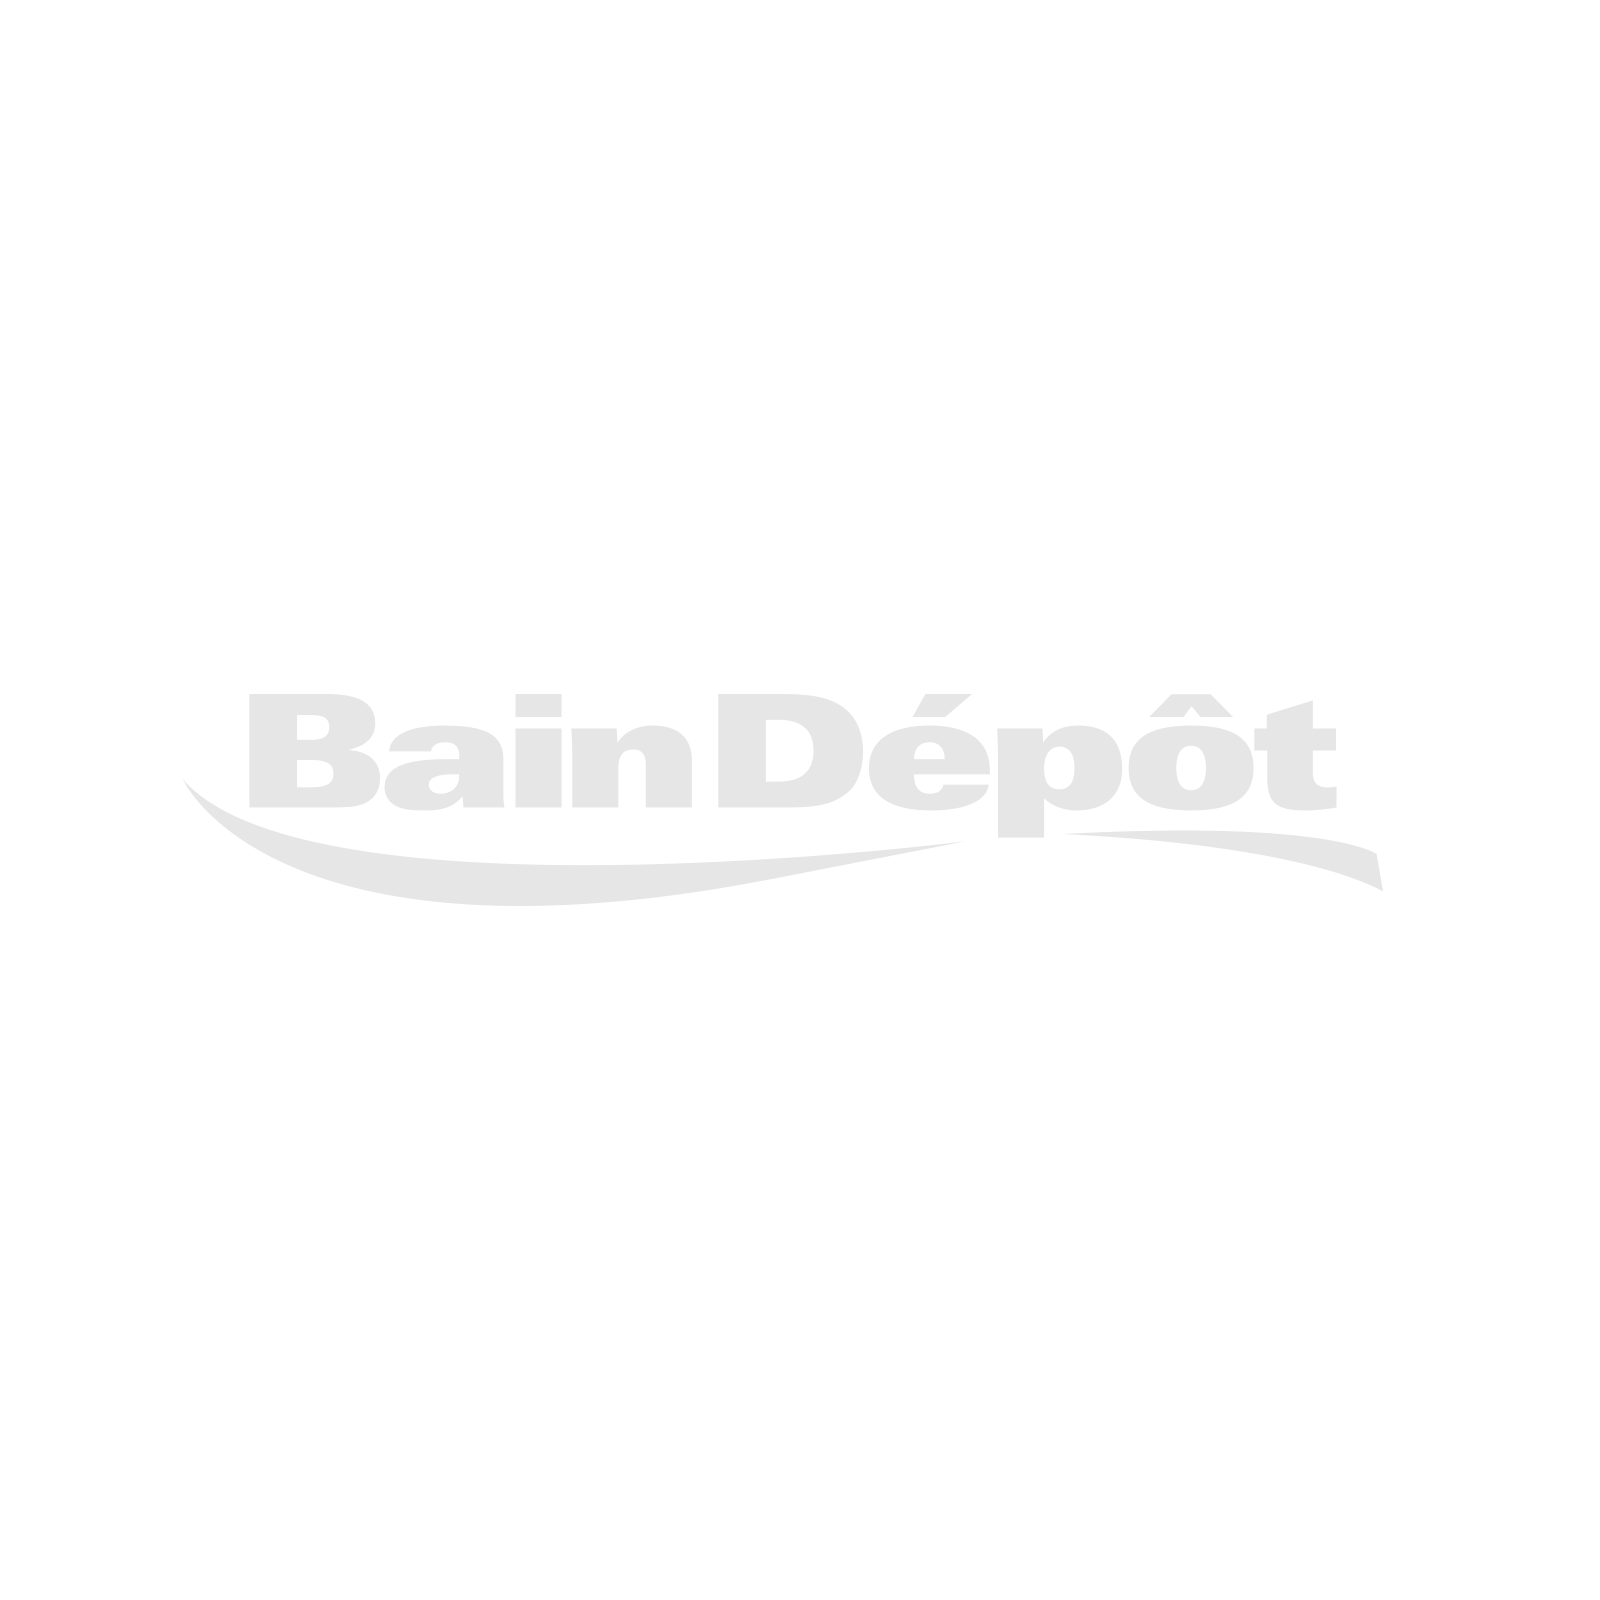 "40"" x 24"" Bathroom mirror with aluminum frame"